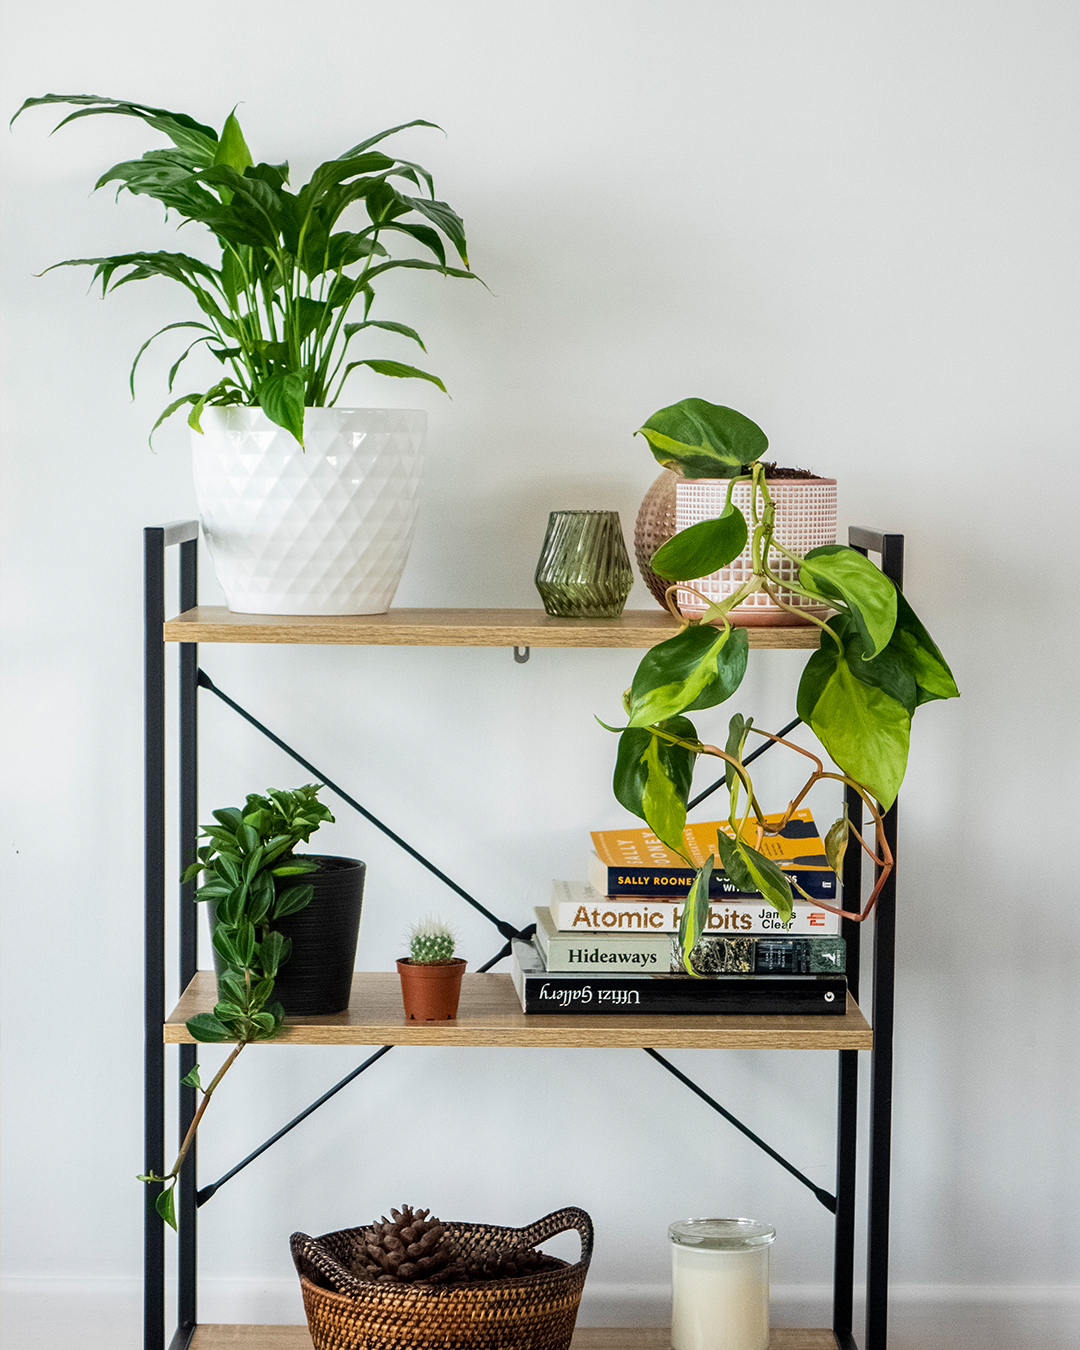 A Tiered shelf